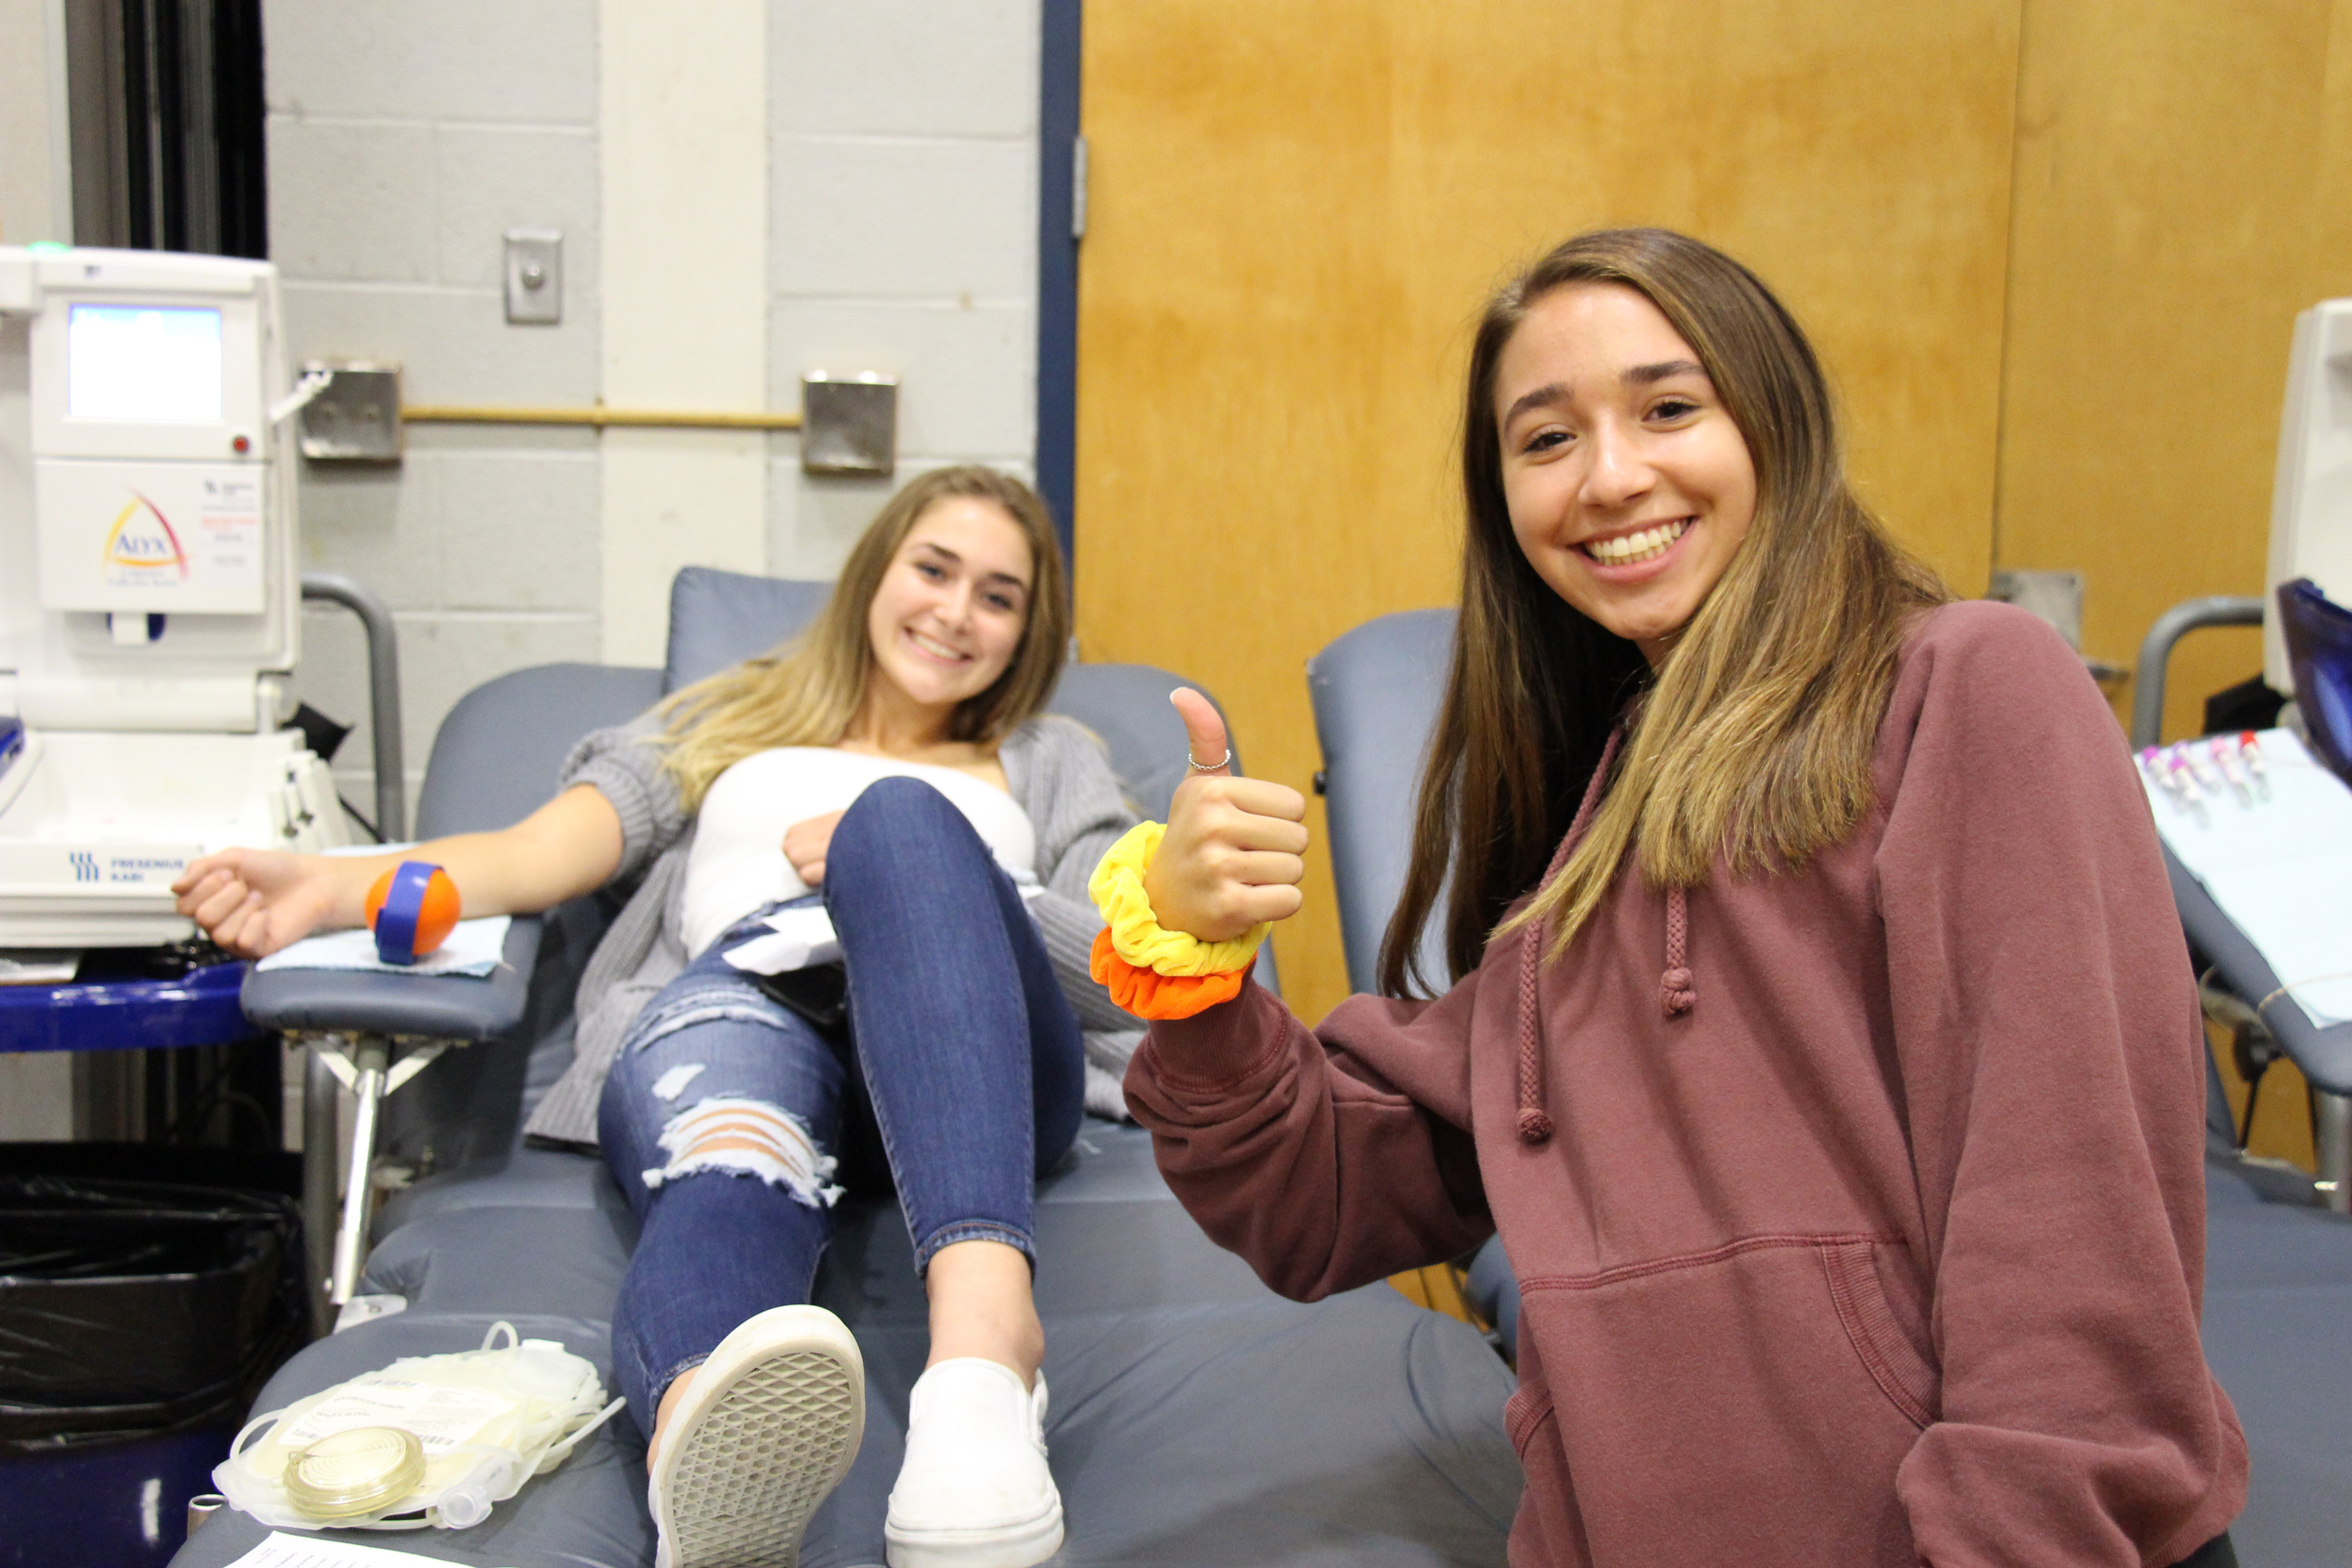 Two young women - one on a gurney giving blood and another in front of her giving a thumbs up.